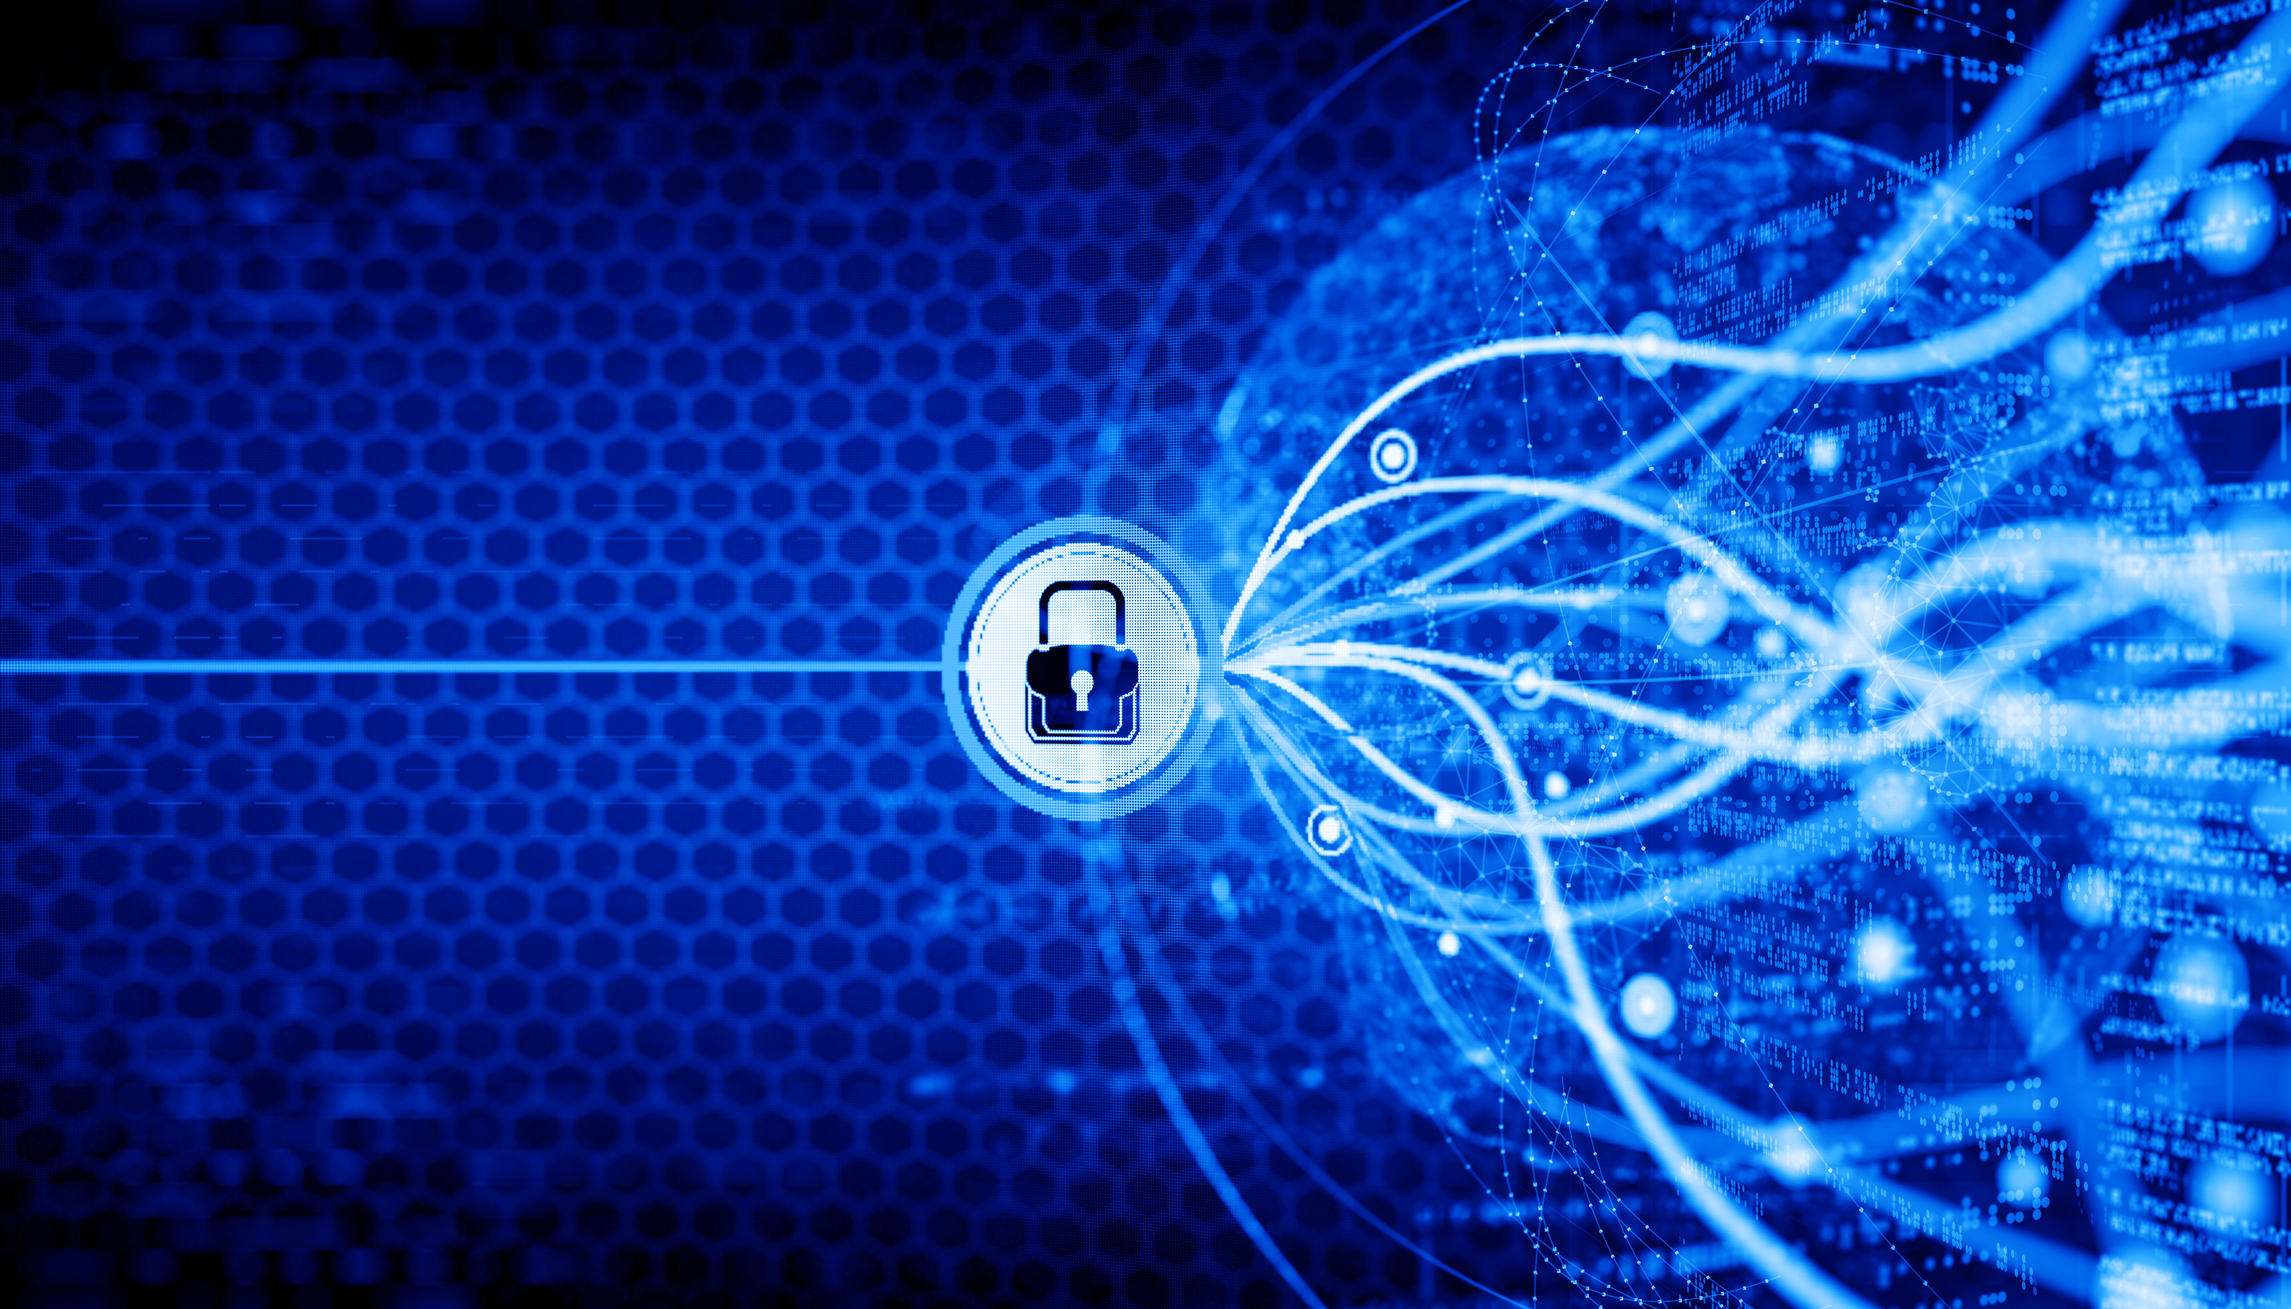 Exploring Network Security (+8 Ways to Protect Your Network)